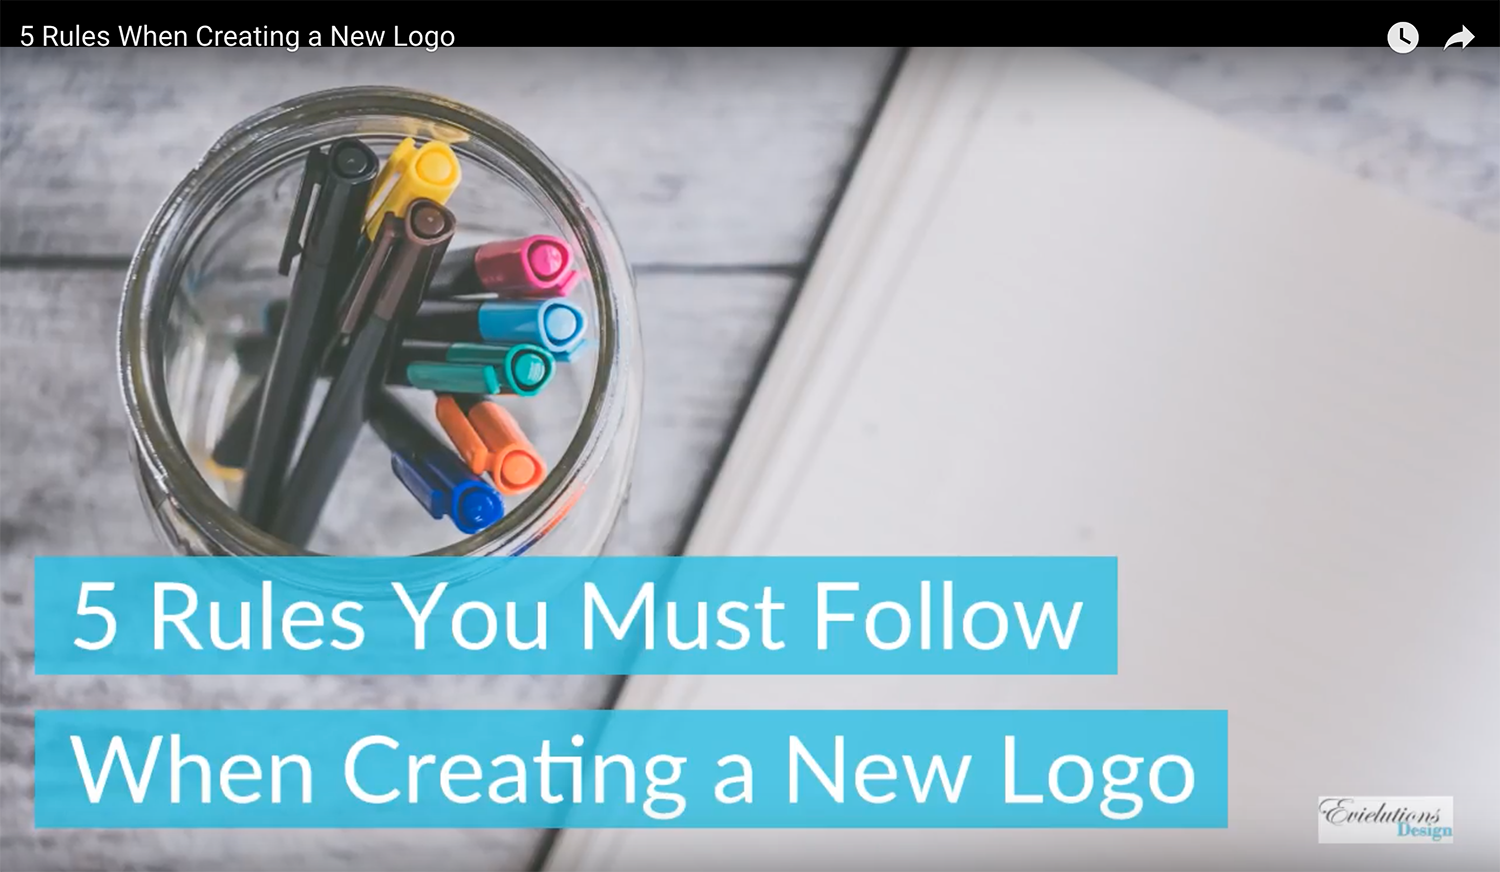 5 Rules You Must Follow When Creating a New Logo